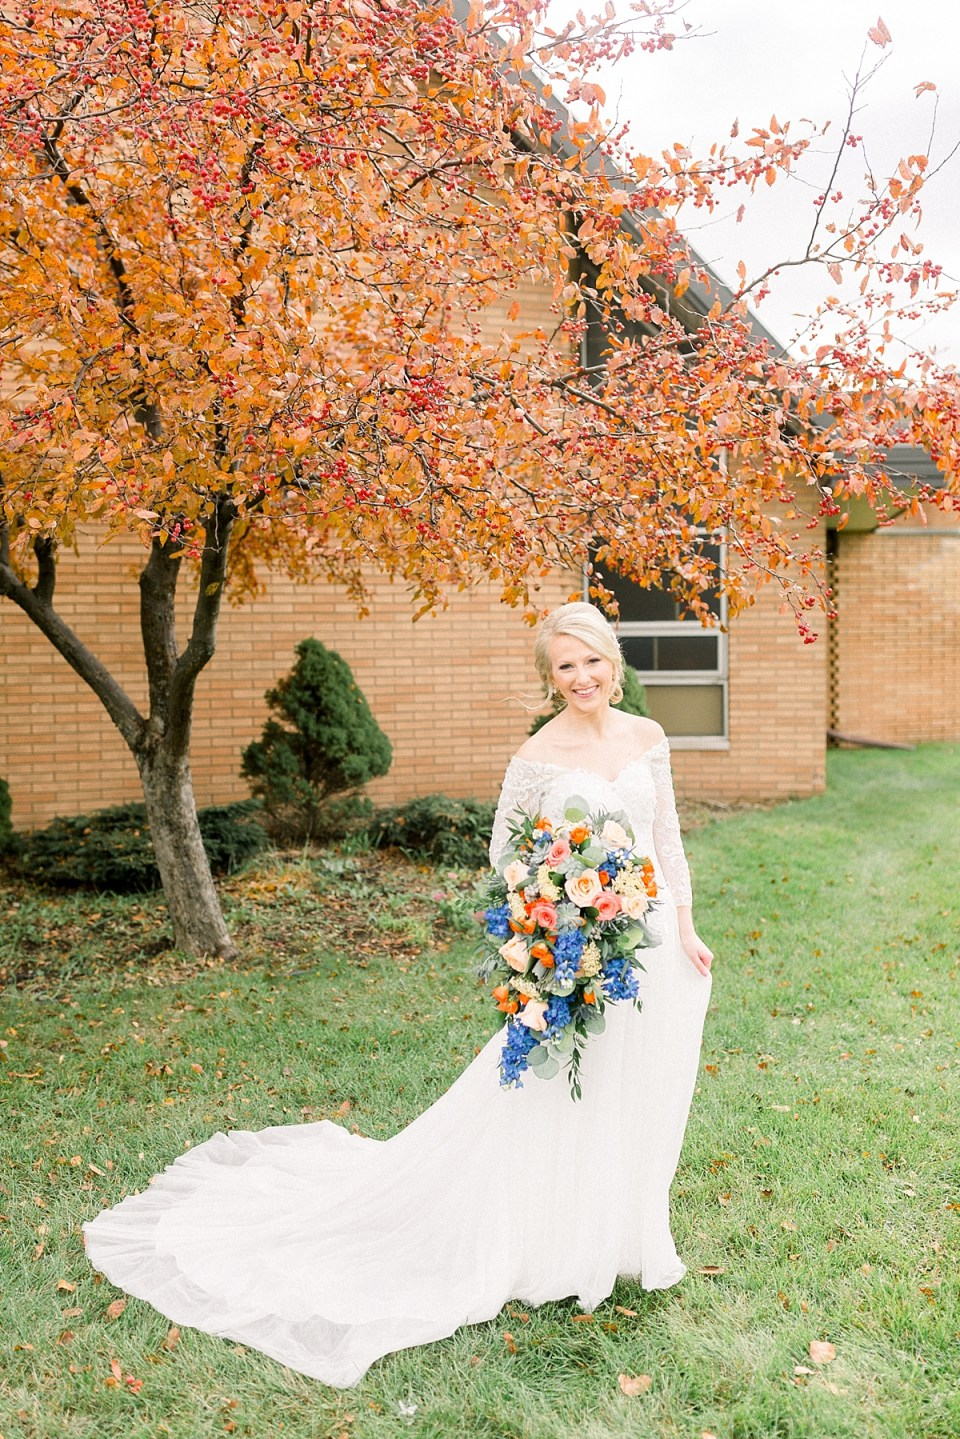 Arielle Peters Photography | Bride smiling with her bouquet outside next to bright orange tree on fall wedding day.